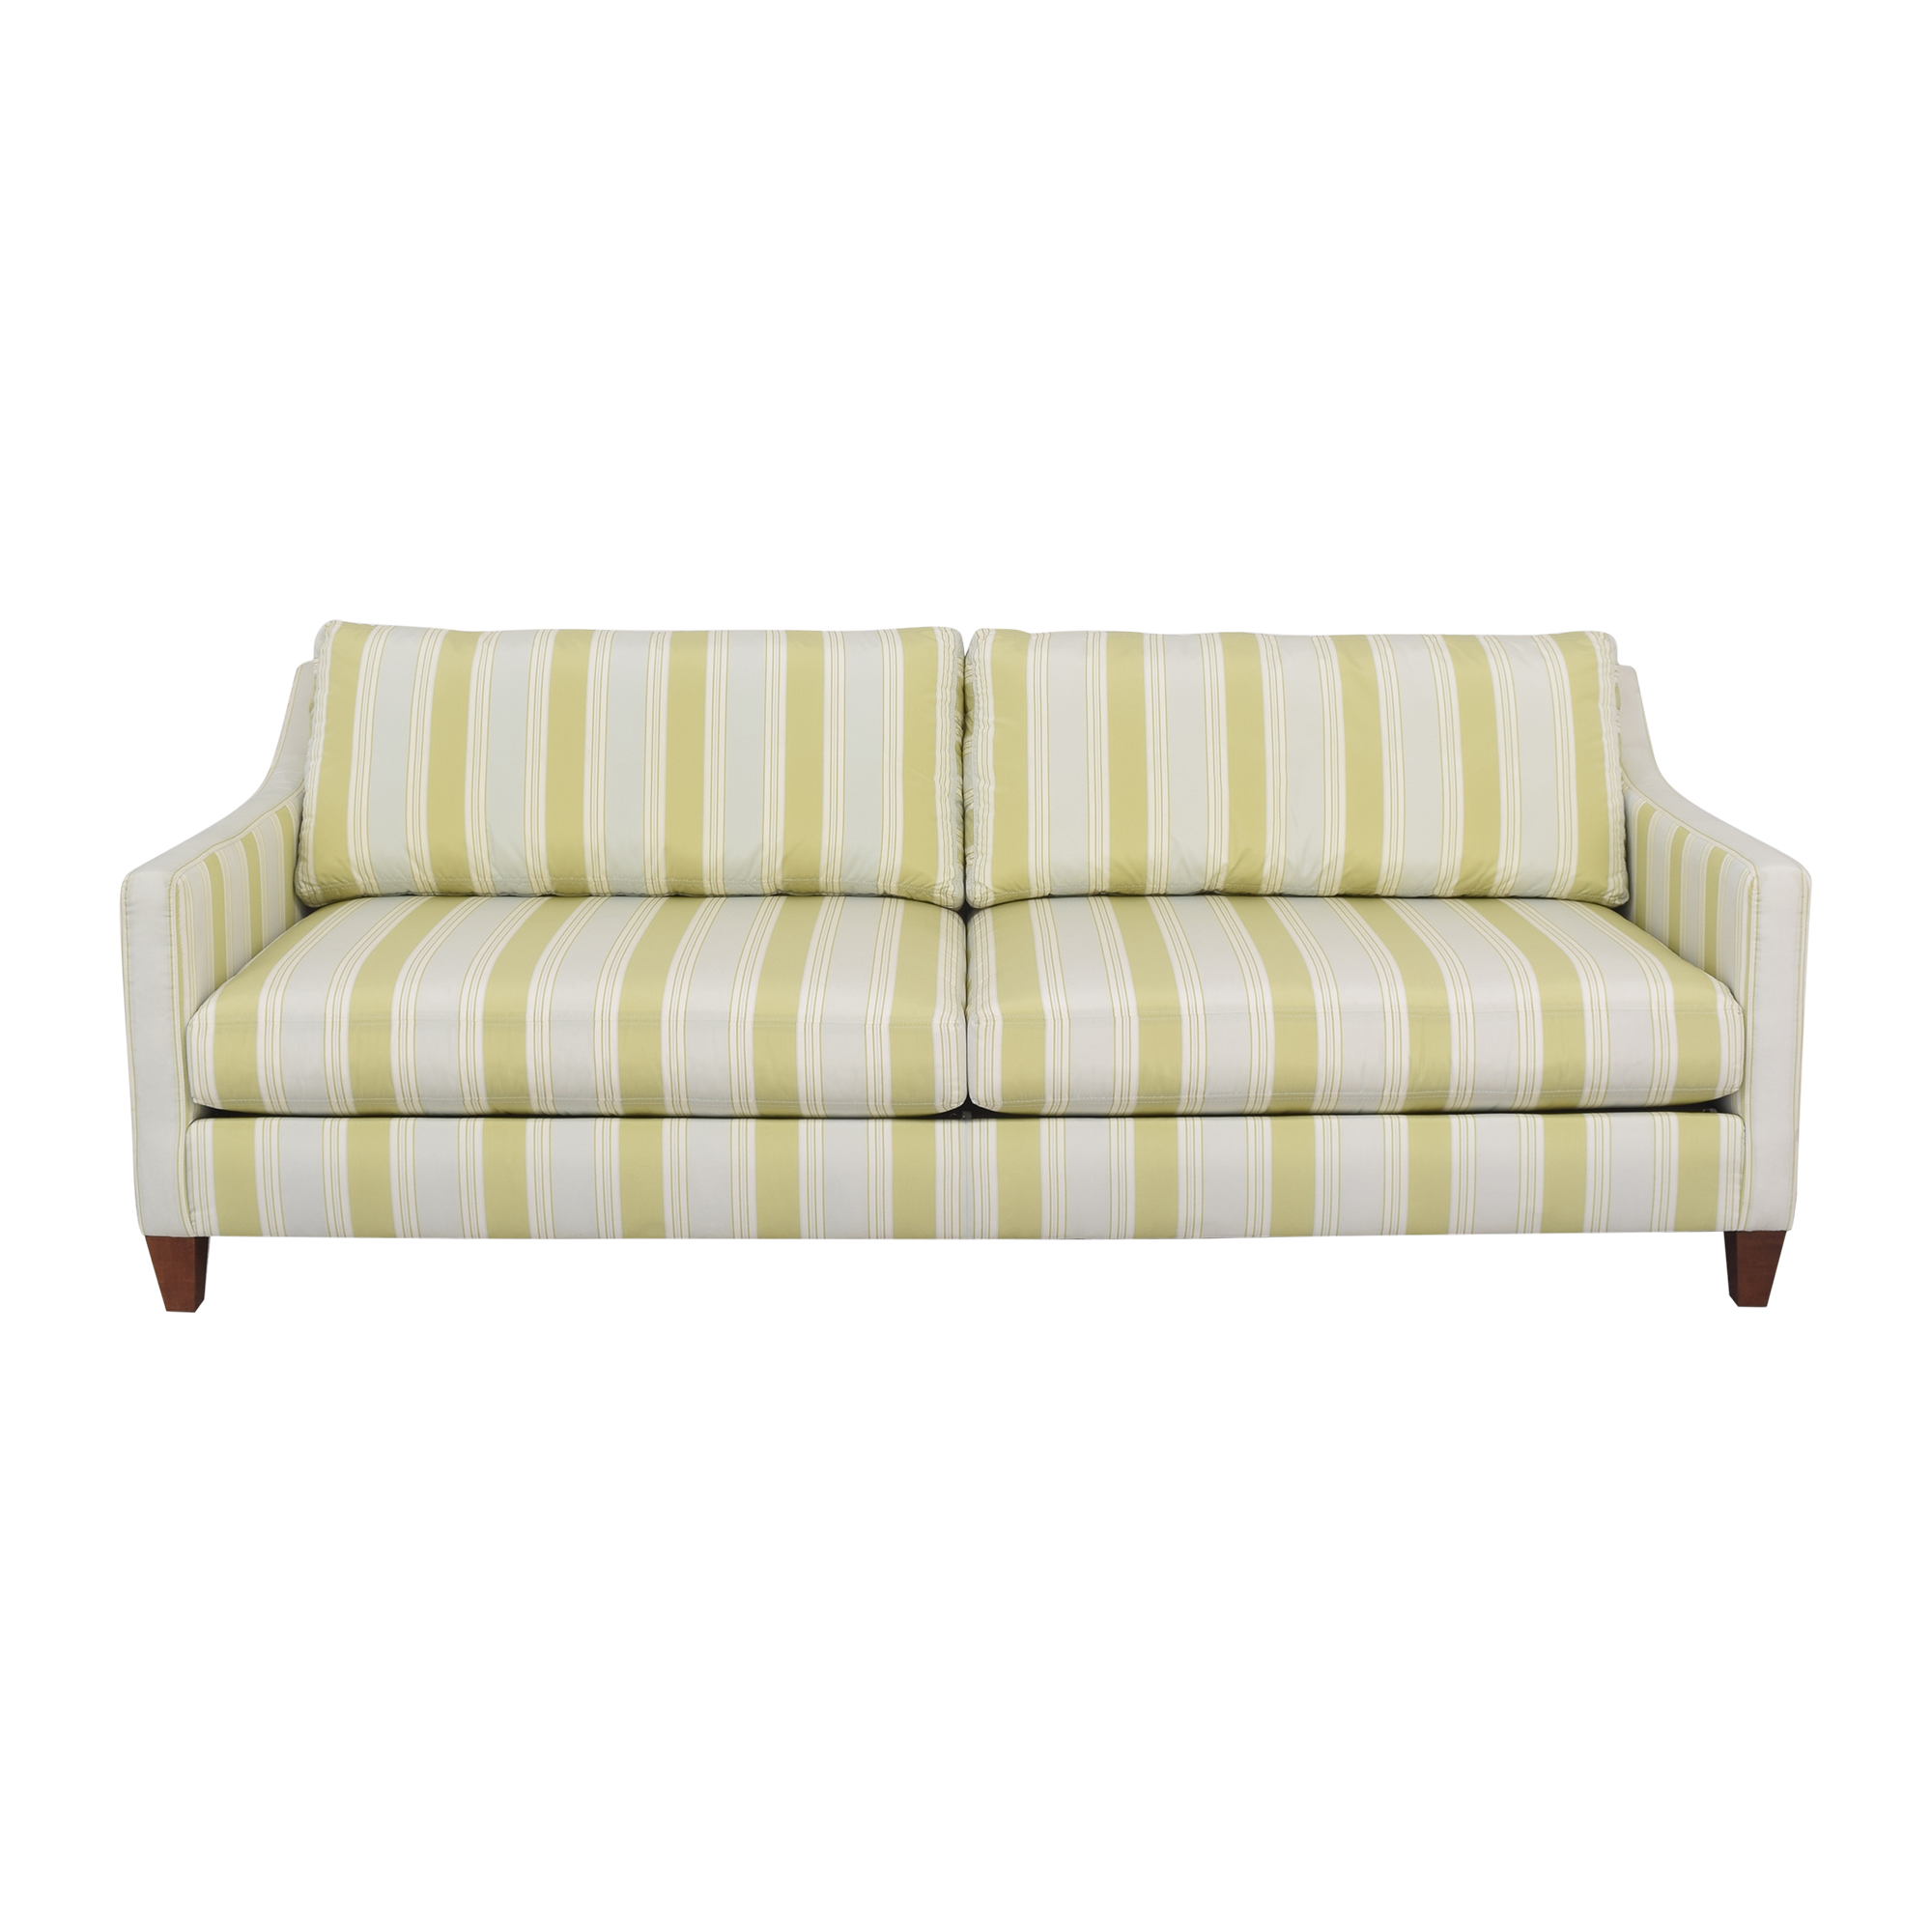 Ethan Allen Ethan Allen Stripe Sofa coupon